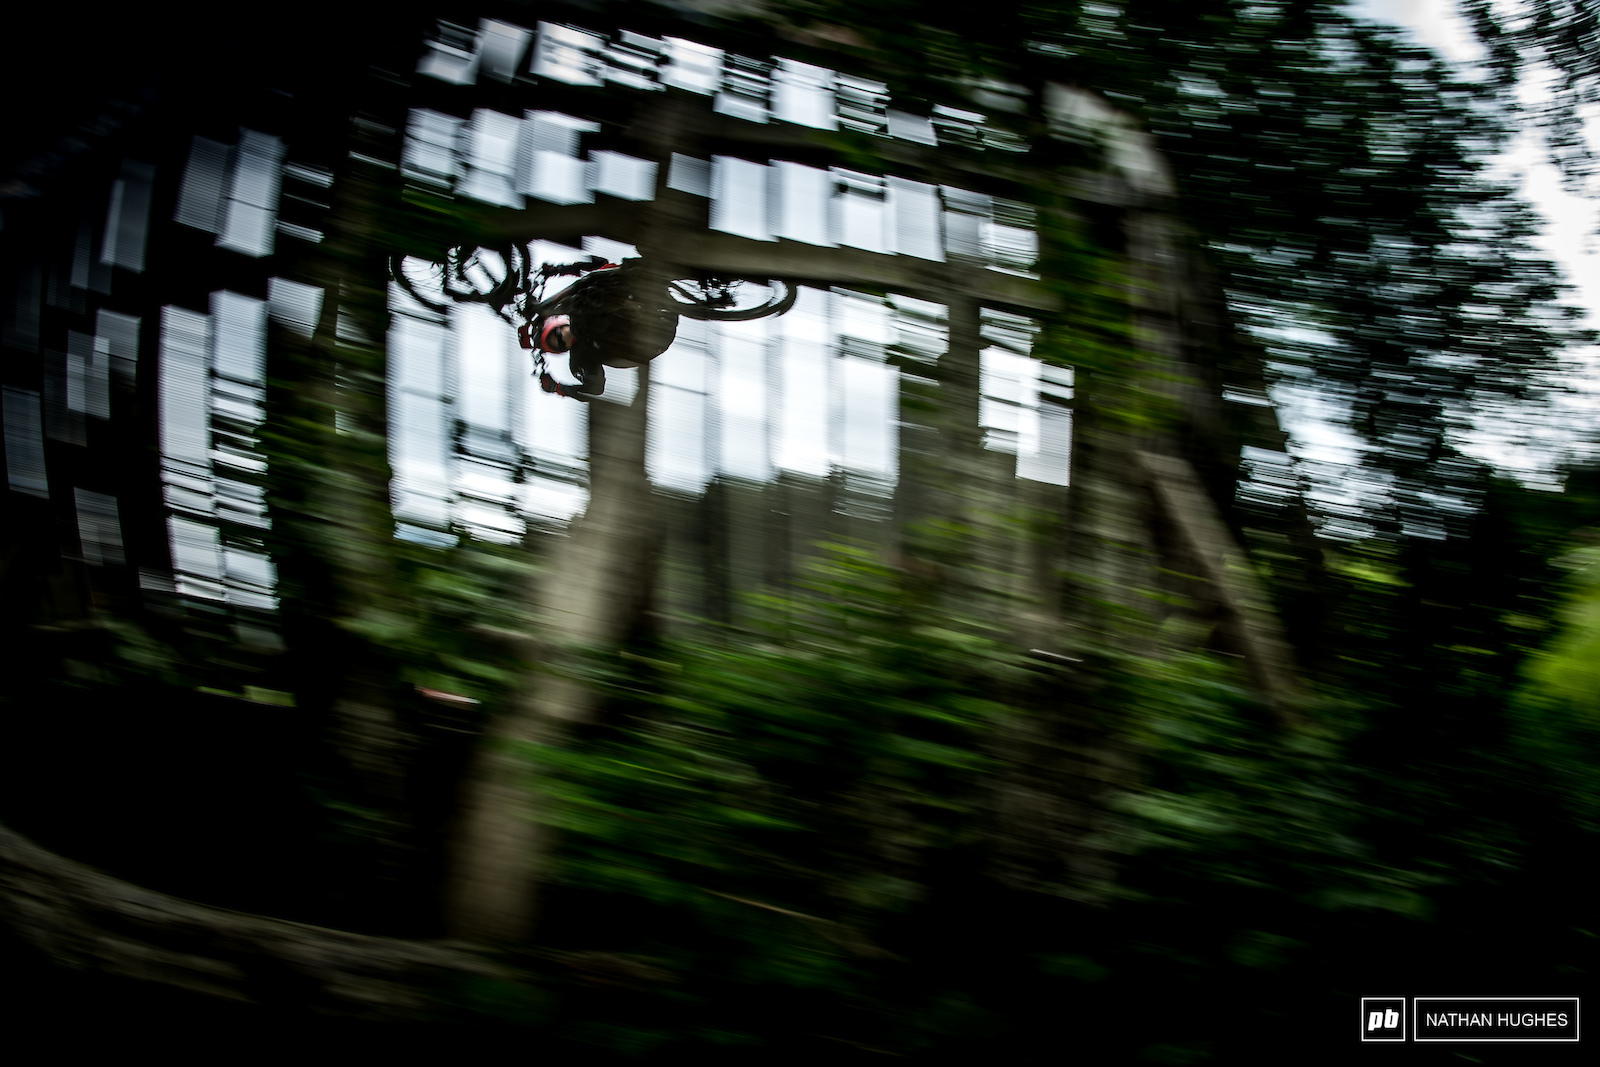 Jumps motorways and wallrides ... Leogang in a nutshell.